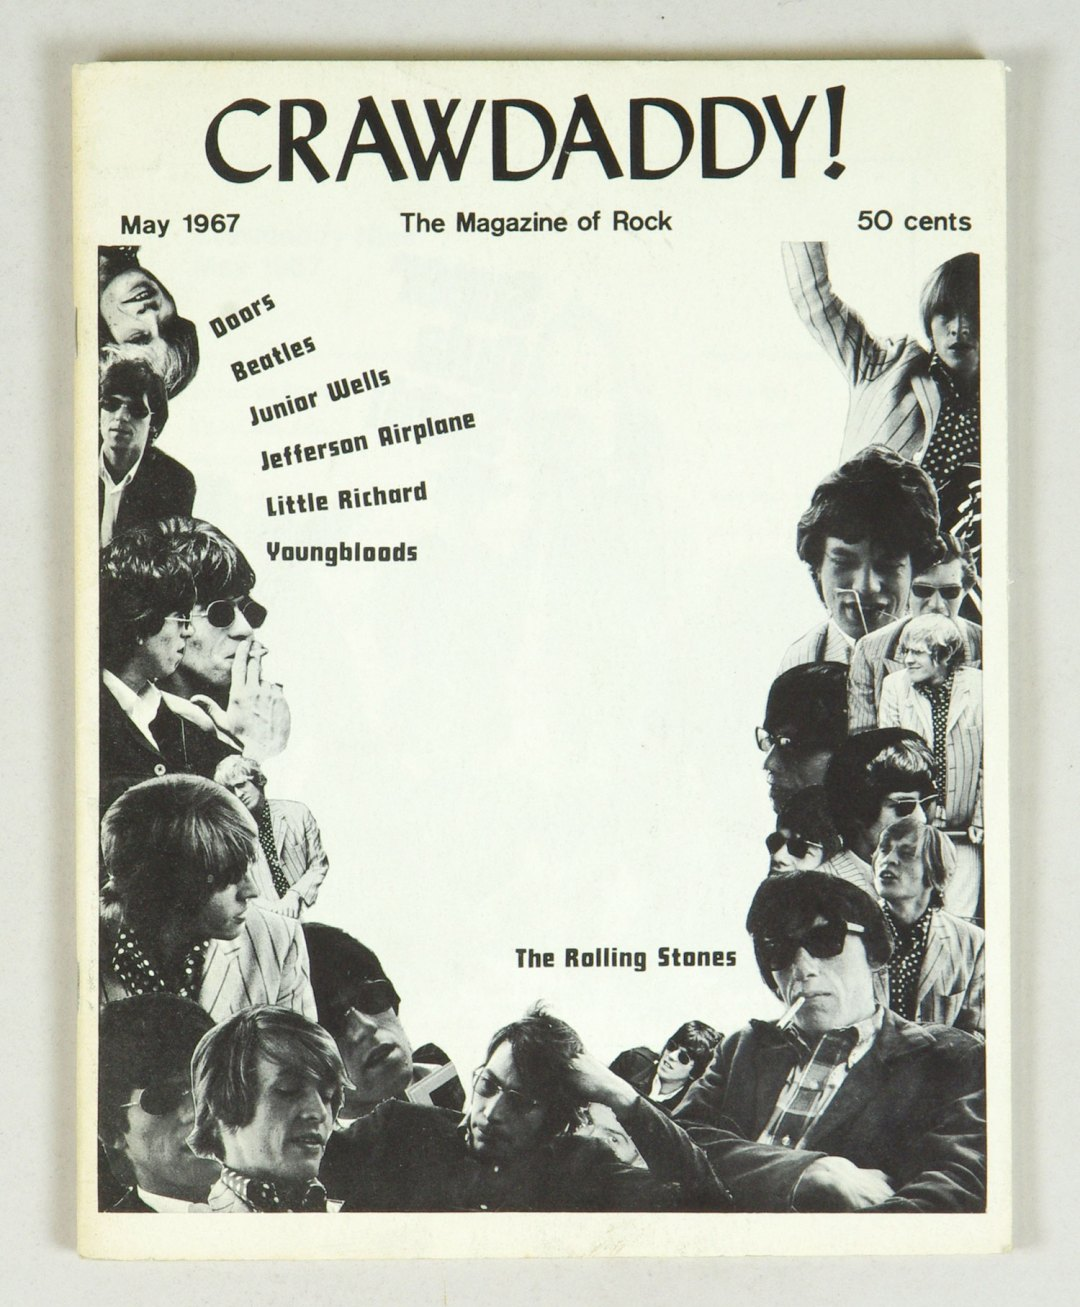 Crawdaddy The Magazine of Rock back issue 1967 May The Rolling Stones